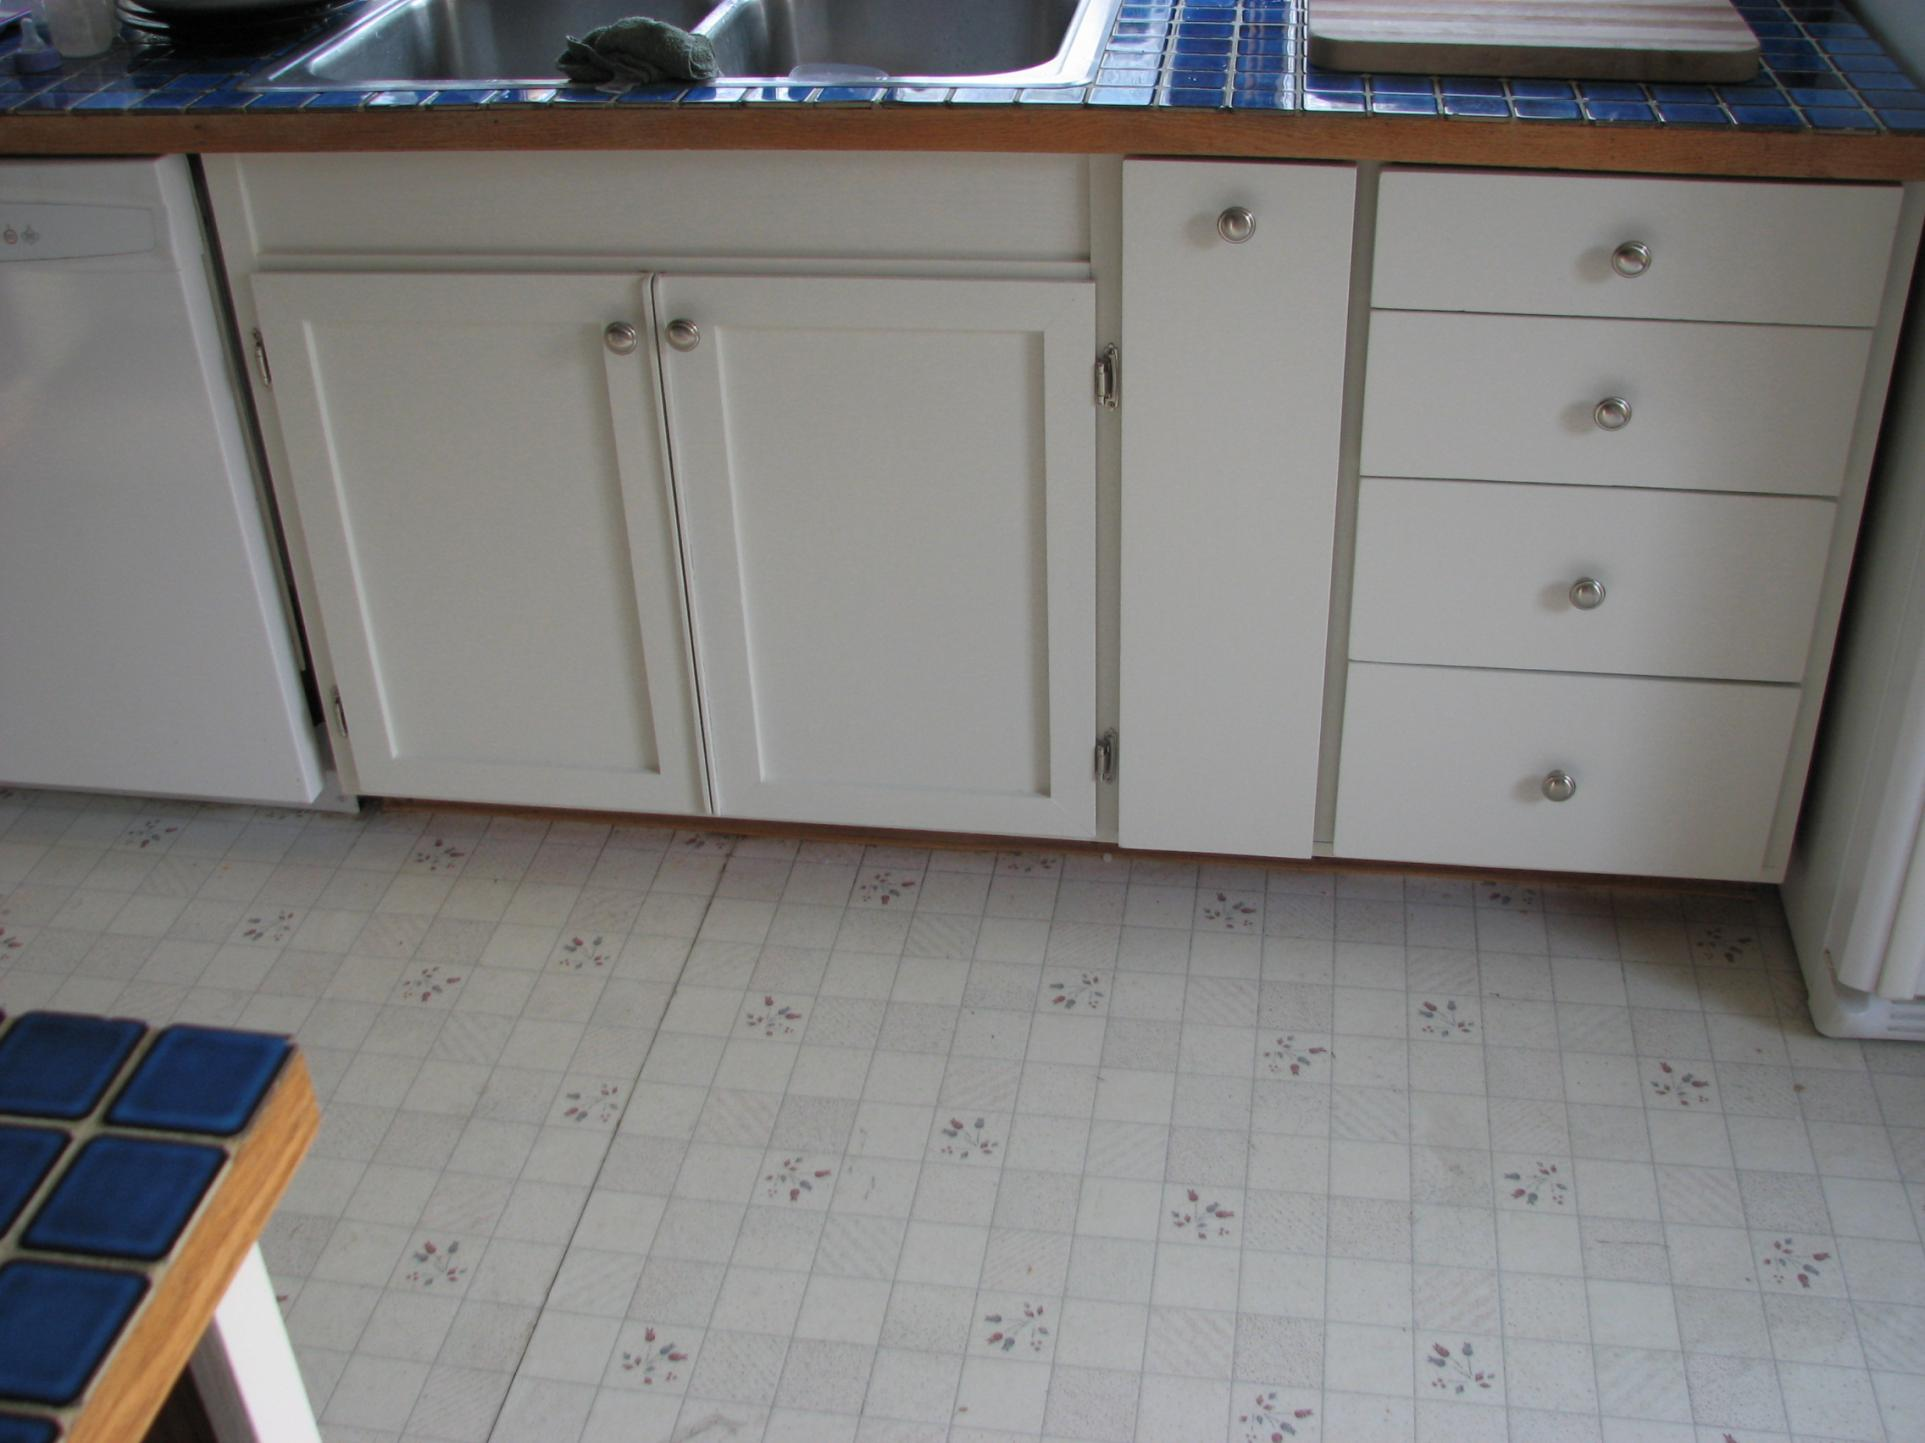 Need an airless paint sprayer for cabinets-004.jpg